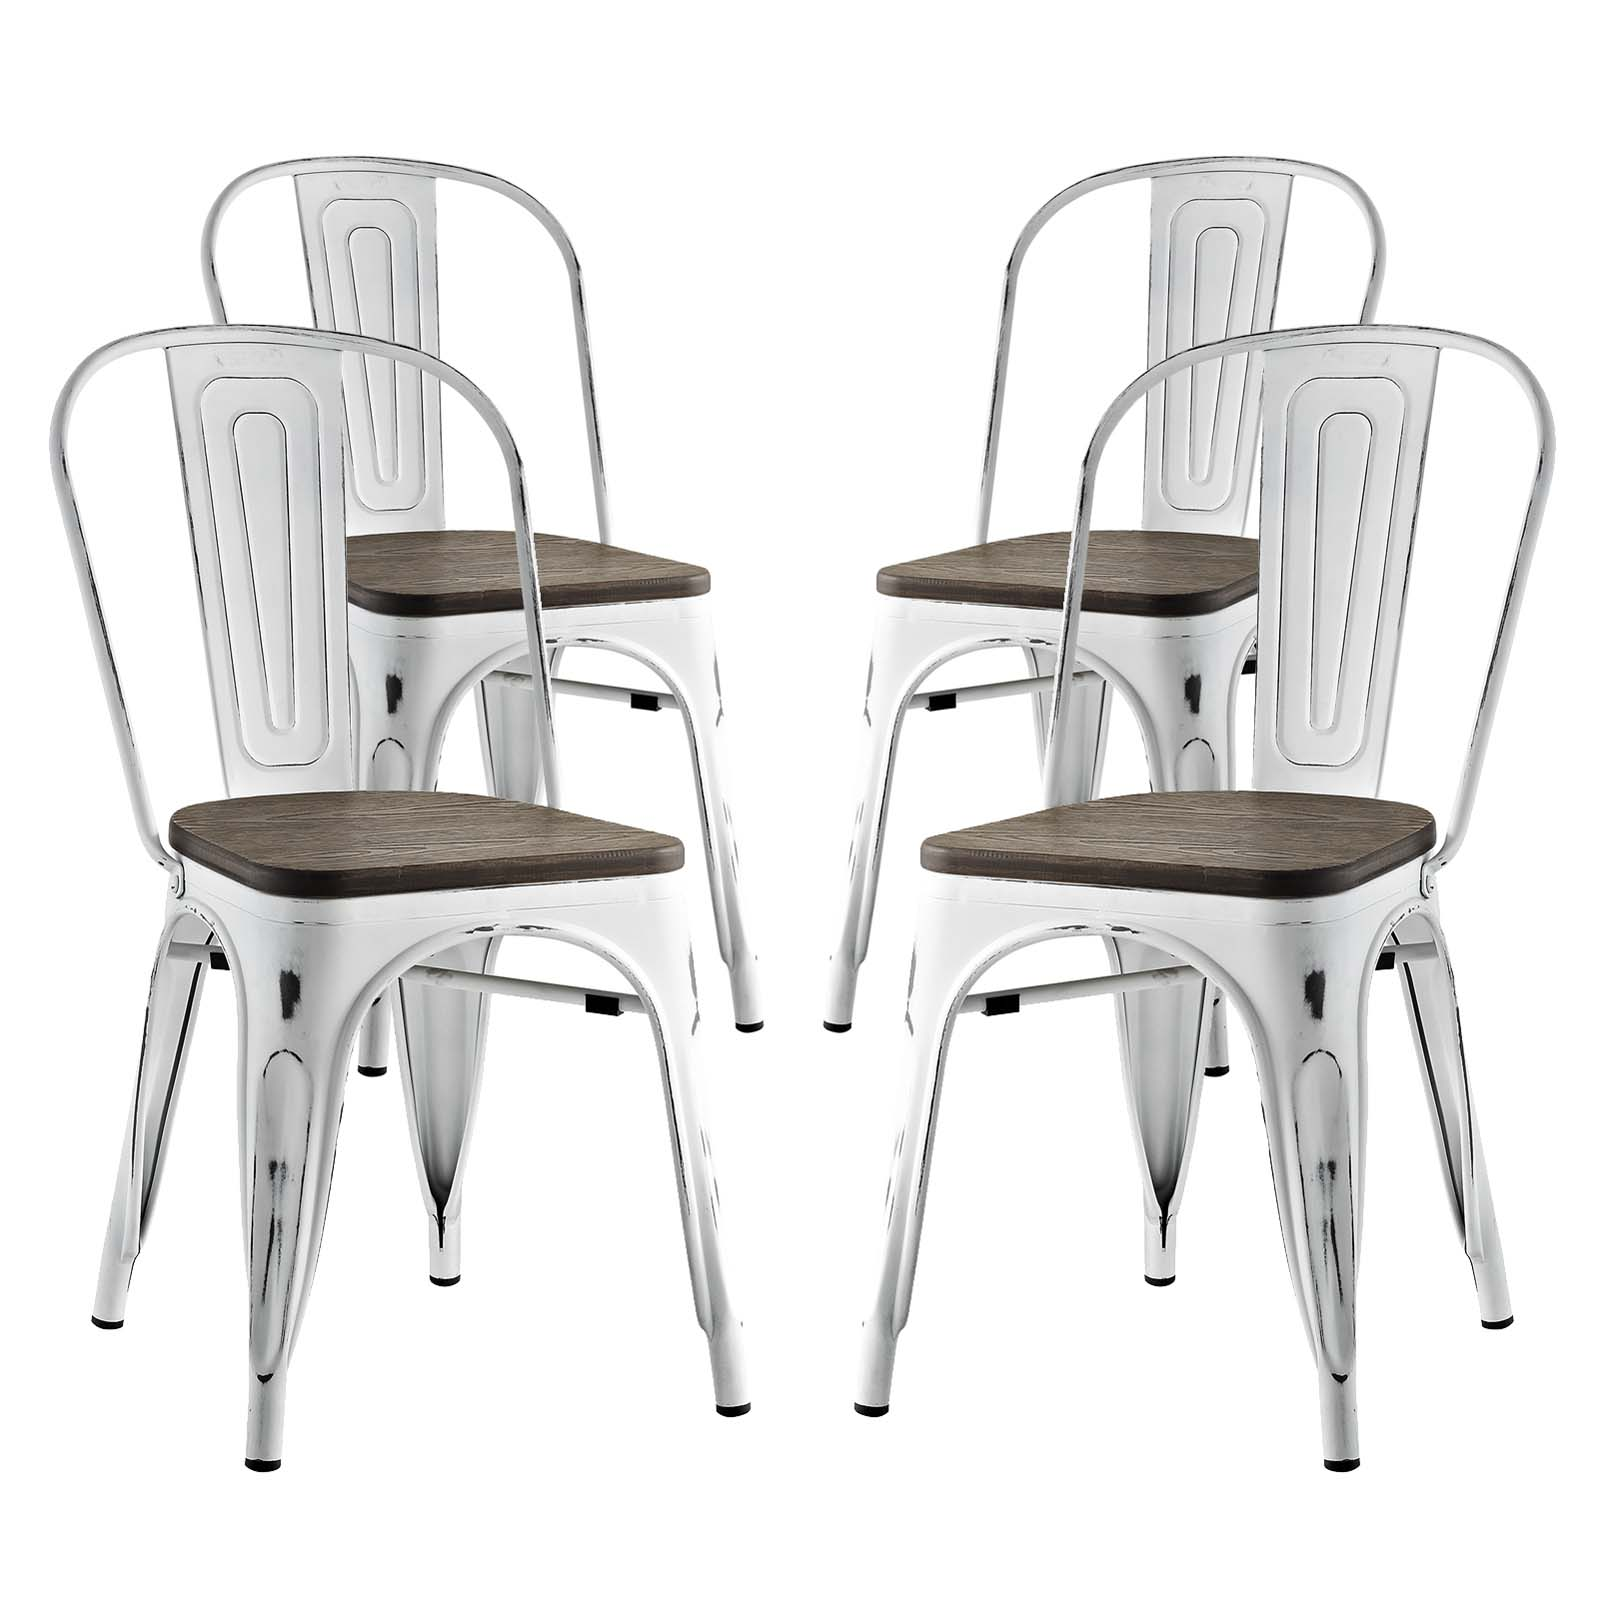 Modern Contemporary Urban Design Industrial Distressed Antique Vintage Style Kitchen Room Dining Chair ( Set of 4), White, Metal